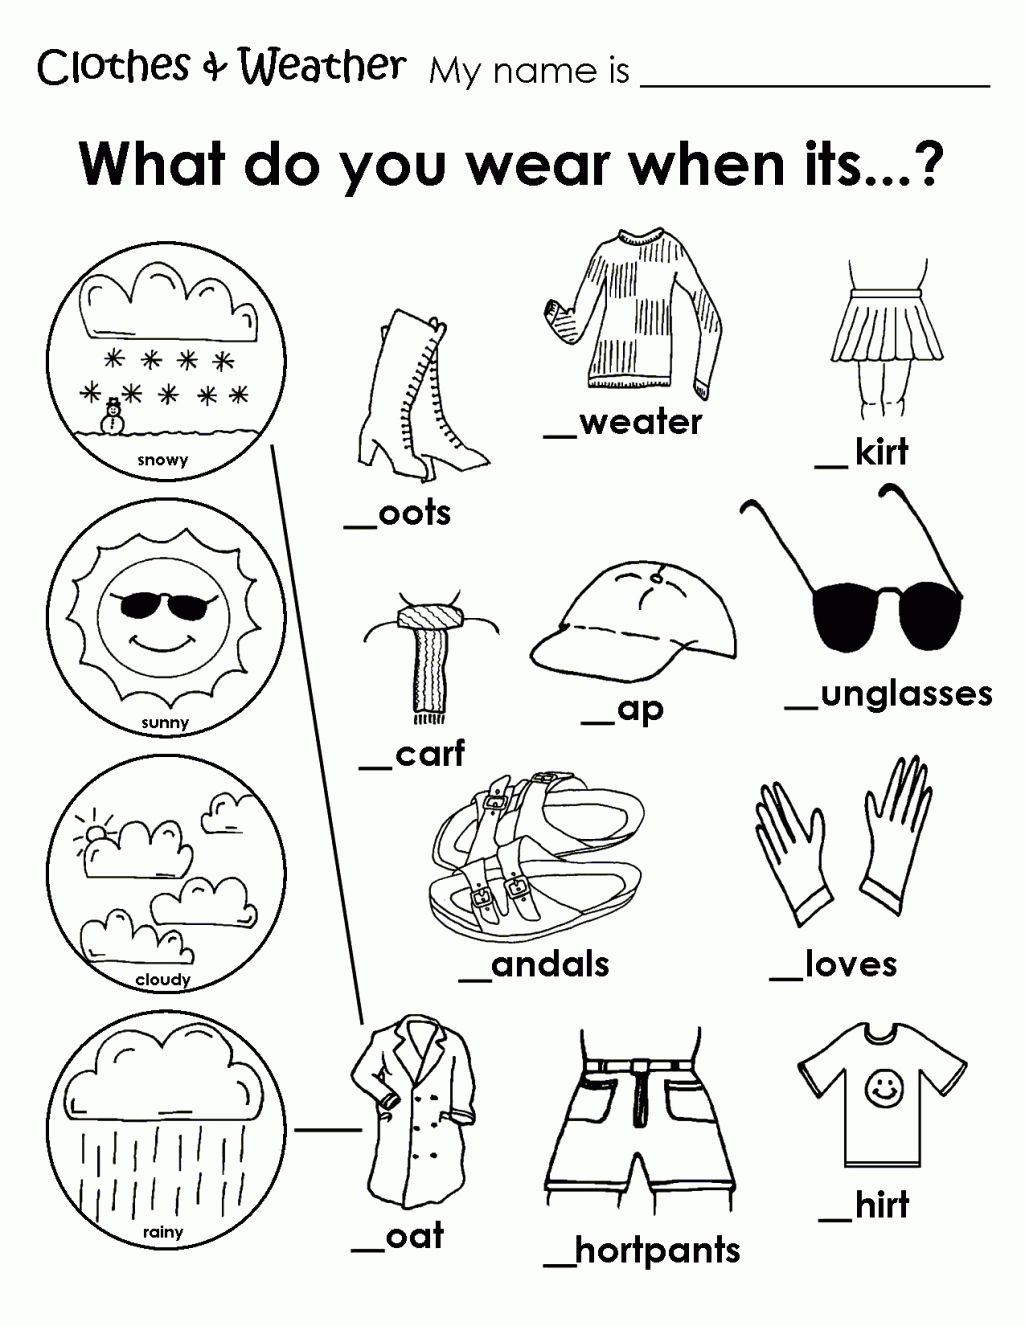 Coloring games in english - Free Coloring Pages Of Clothing Worksheet Weather Coloring Sheets For Kindergarten Weather Coloring Sheets For Kindergarten Mais